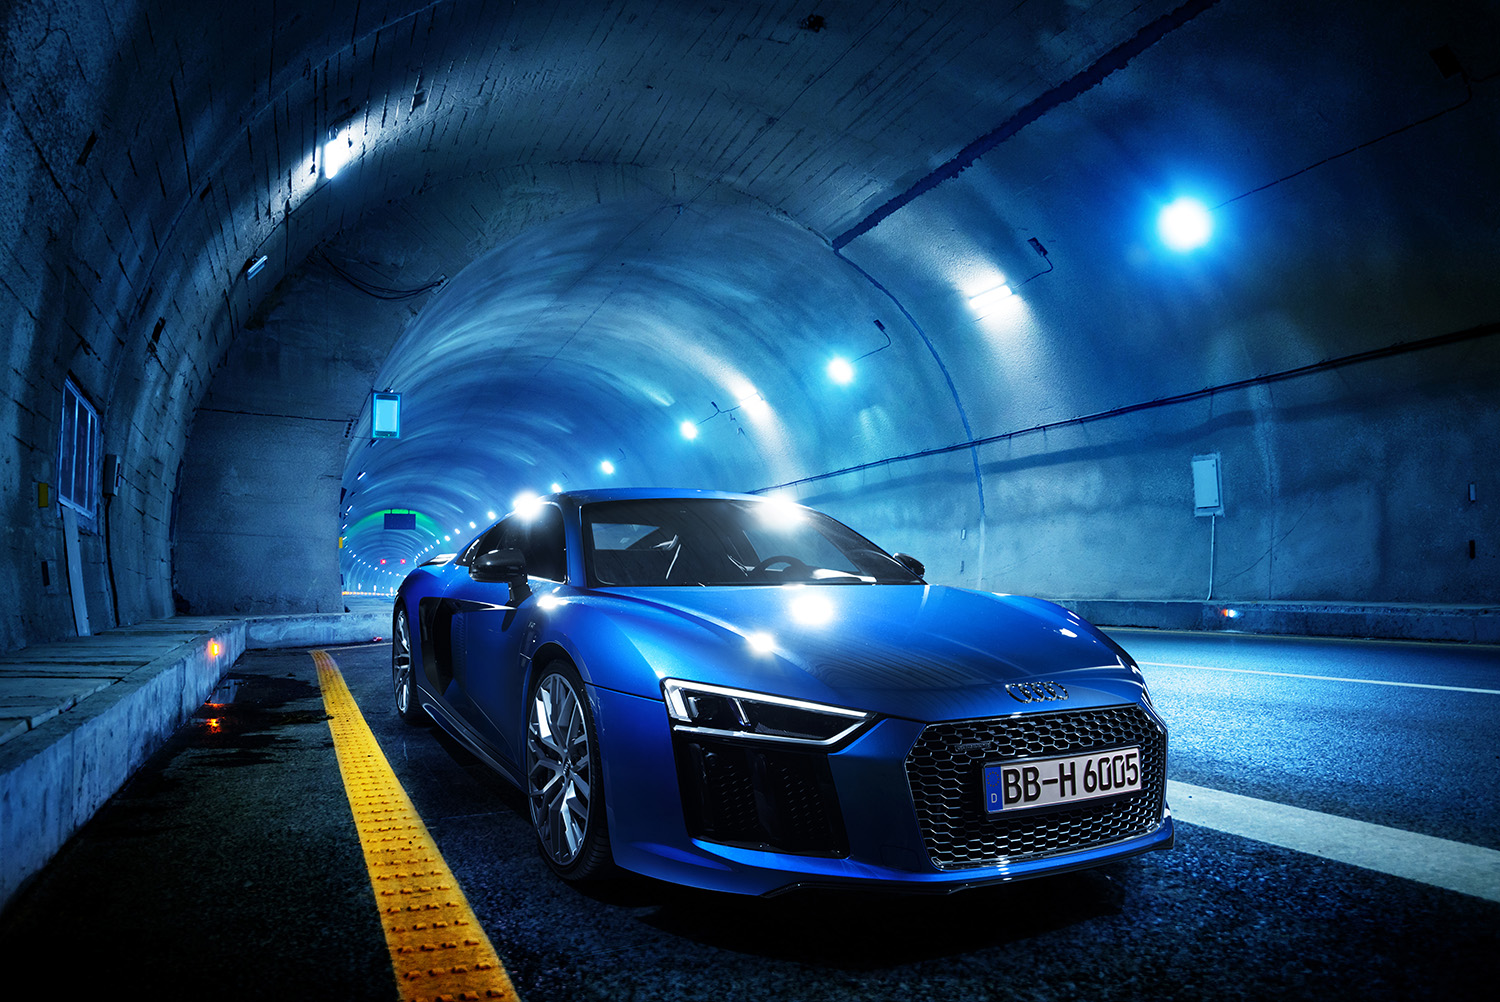 Audi R8 plus in tunnel